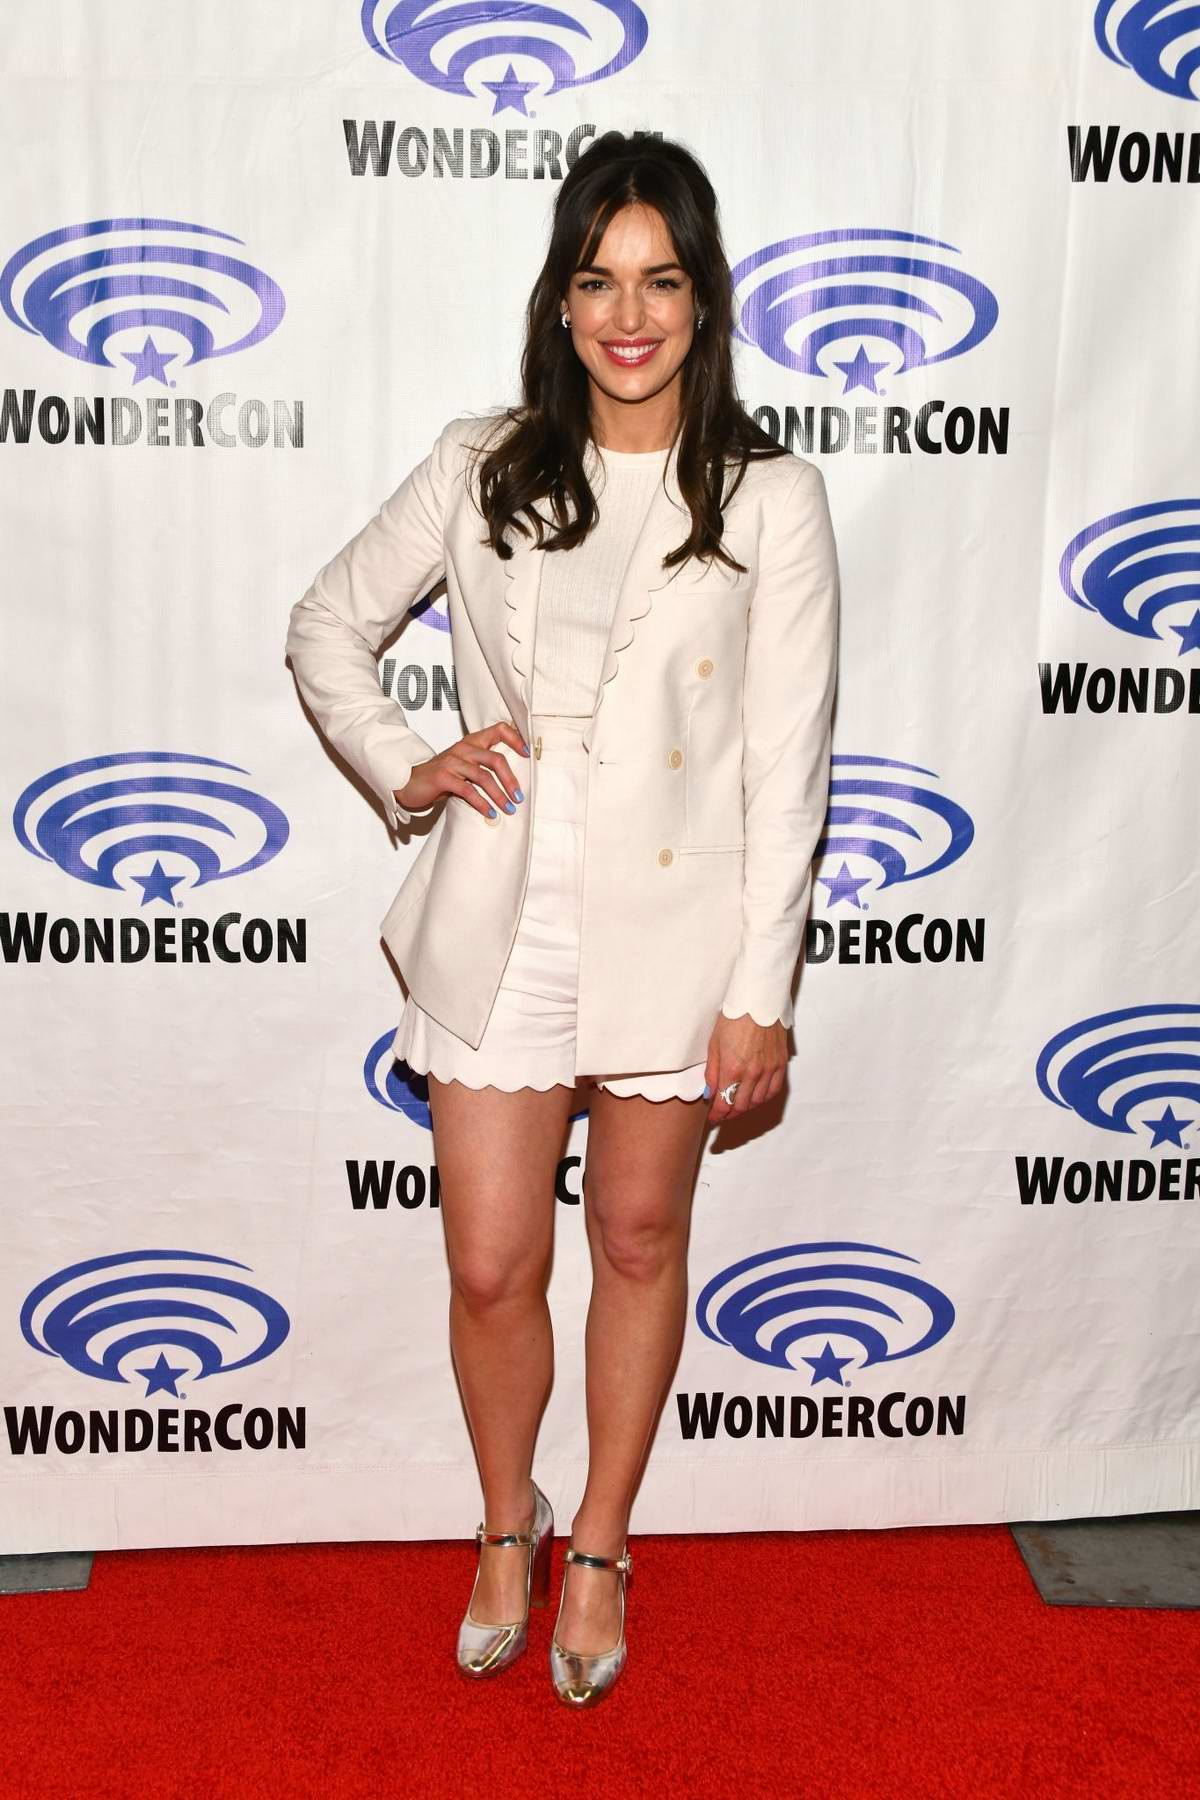 Elizabeth Henstridge attends 'Marvel's Agents of S.H.I.E.L.D.' Press Line during WonderCon 2019 in Anaheim, California